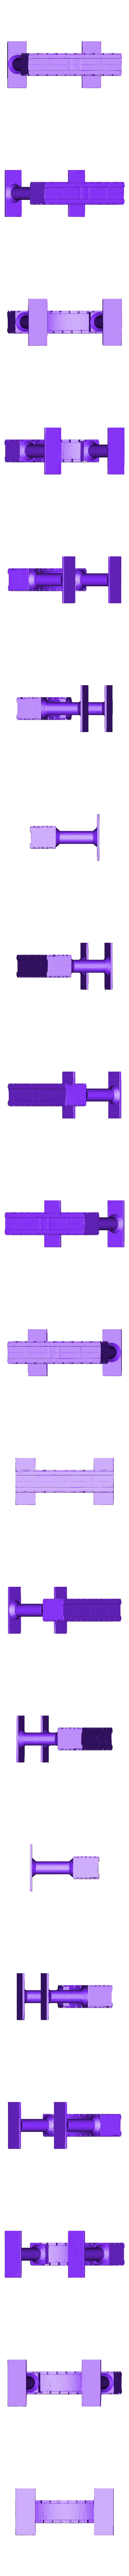 OpenForge_with_Pillars_and_Arch_2inStraight_pillars_only.obj Download free OBJ file Dungeons Tile Set • 3D printing object, 3DRune